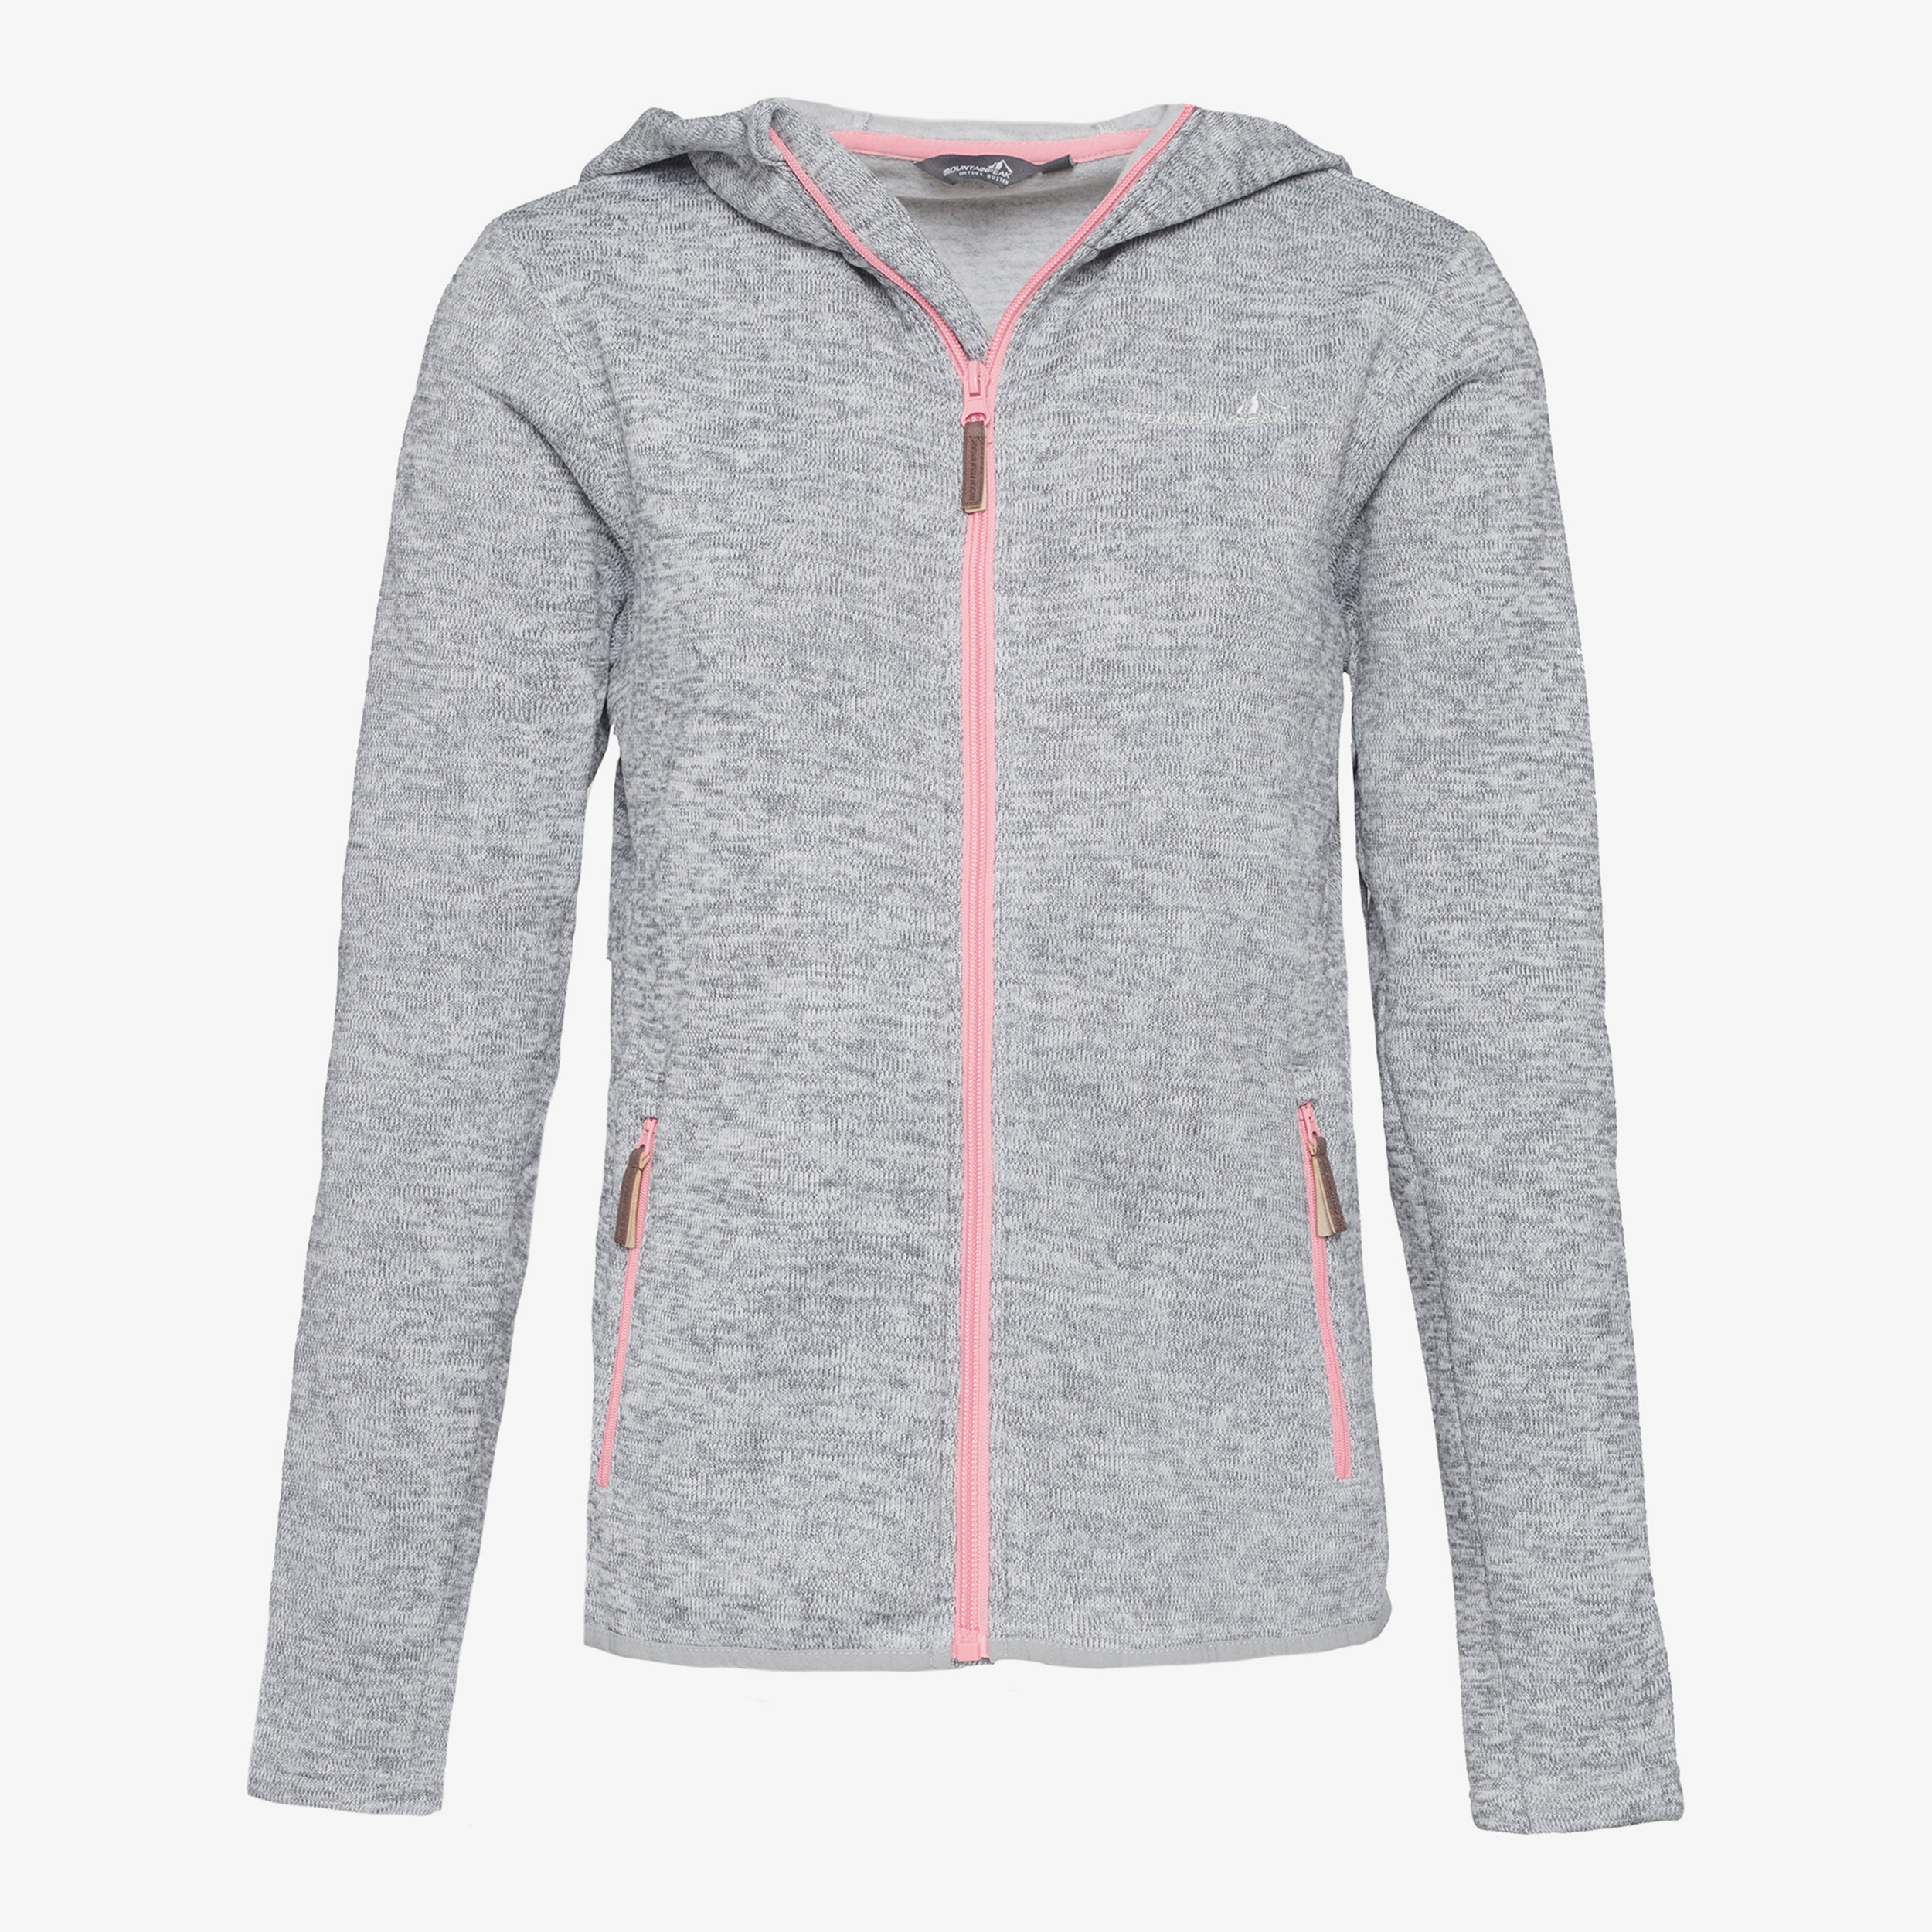 Mountain Peak dames outdoor fleece vest | Scapino.nl